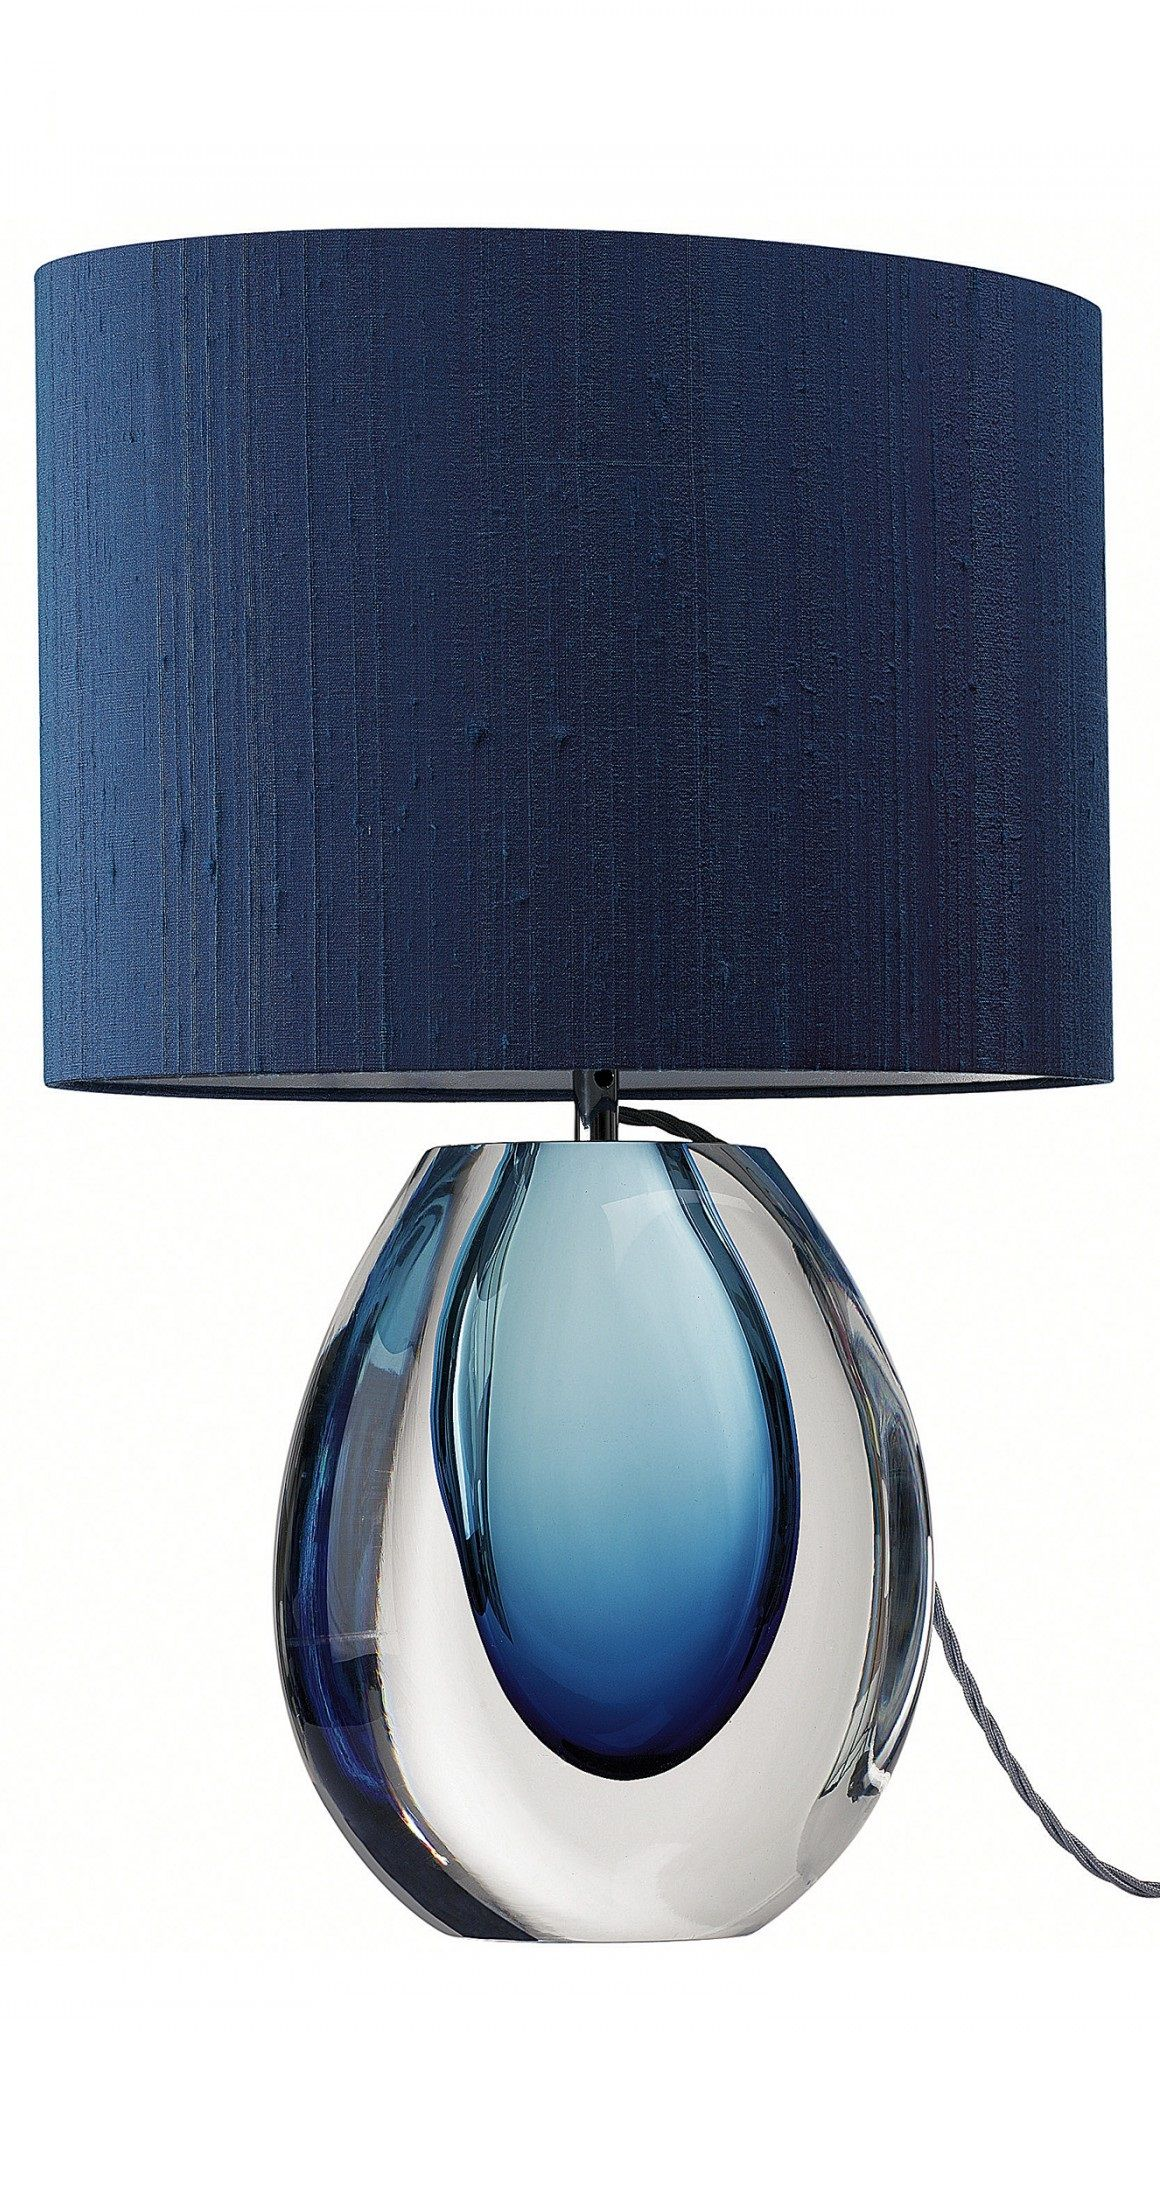 Blue Lamp Blue Lamps Lamps Blue Lamp Blue Designs By Www